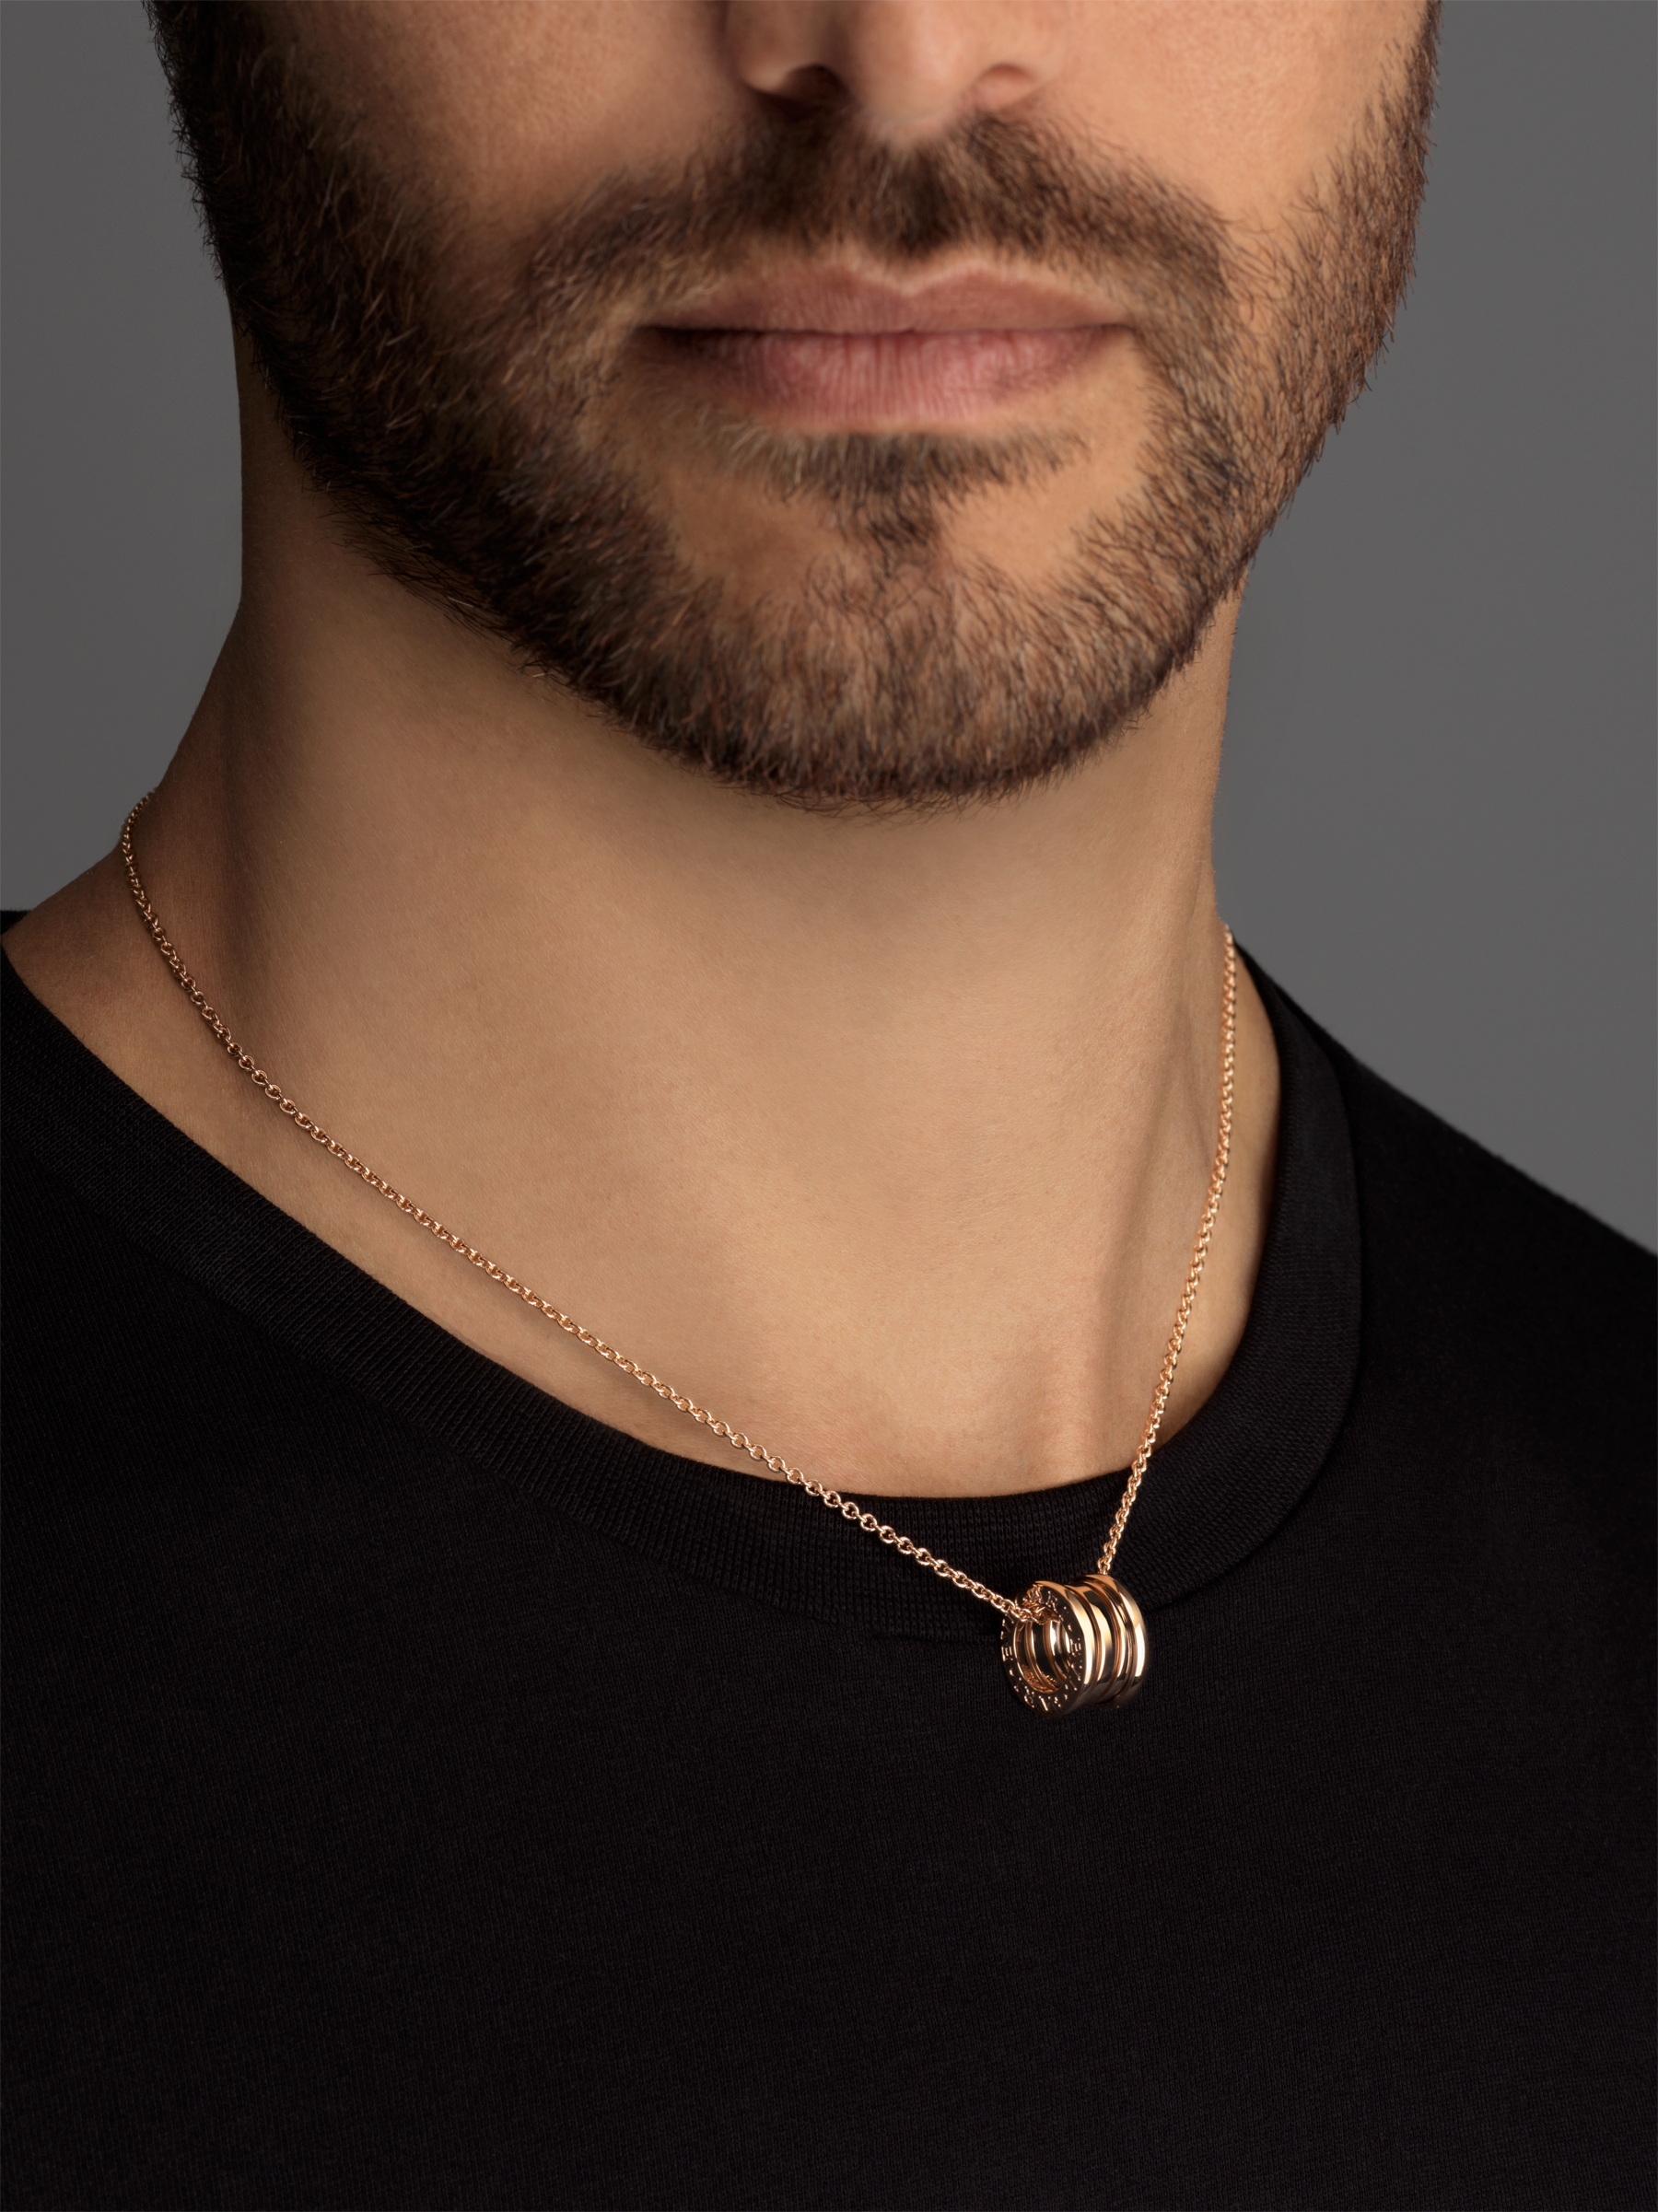 B.zero1 necklace with chain and small round pendant in 18kt rose gold. 335924 image 5